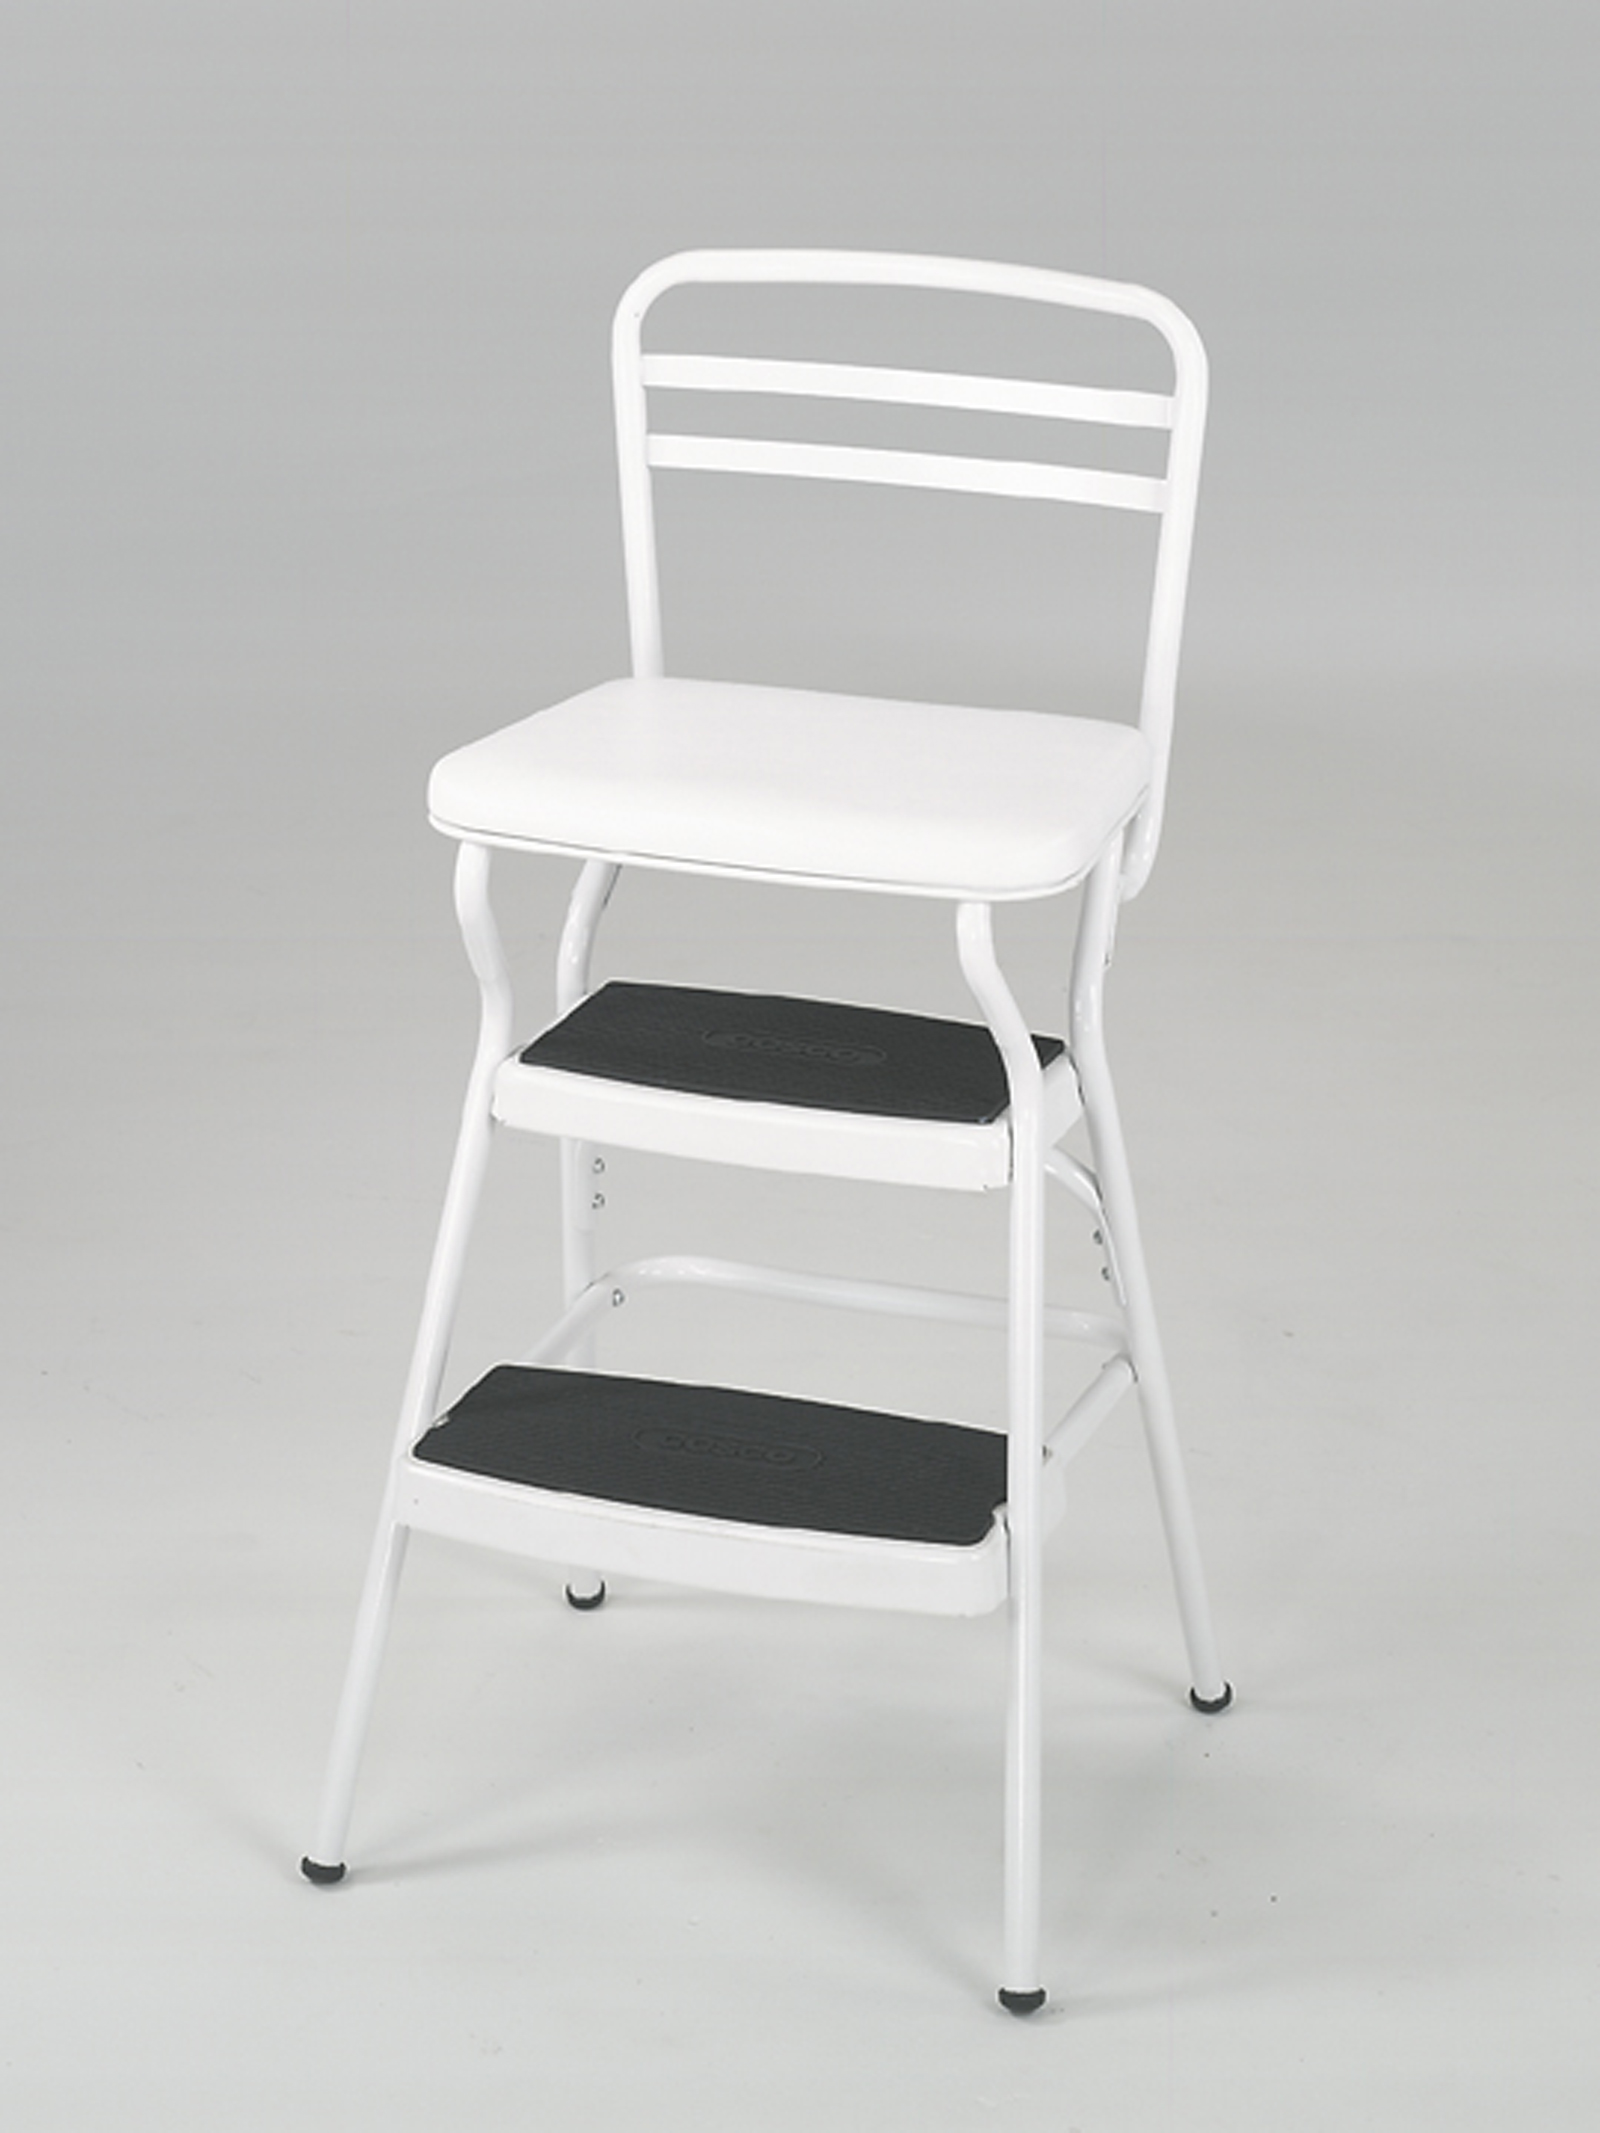 Chair Step Stool Cosco Home And Office Products White Retro Counter Chair